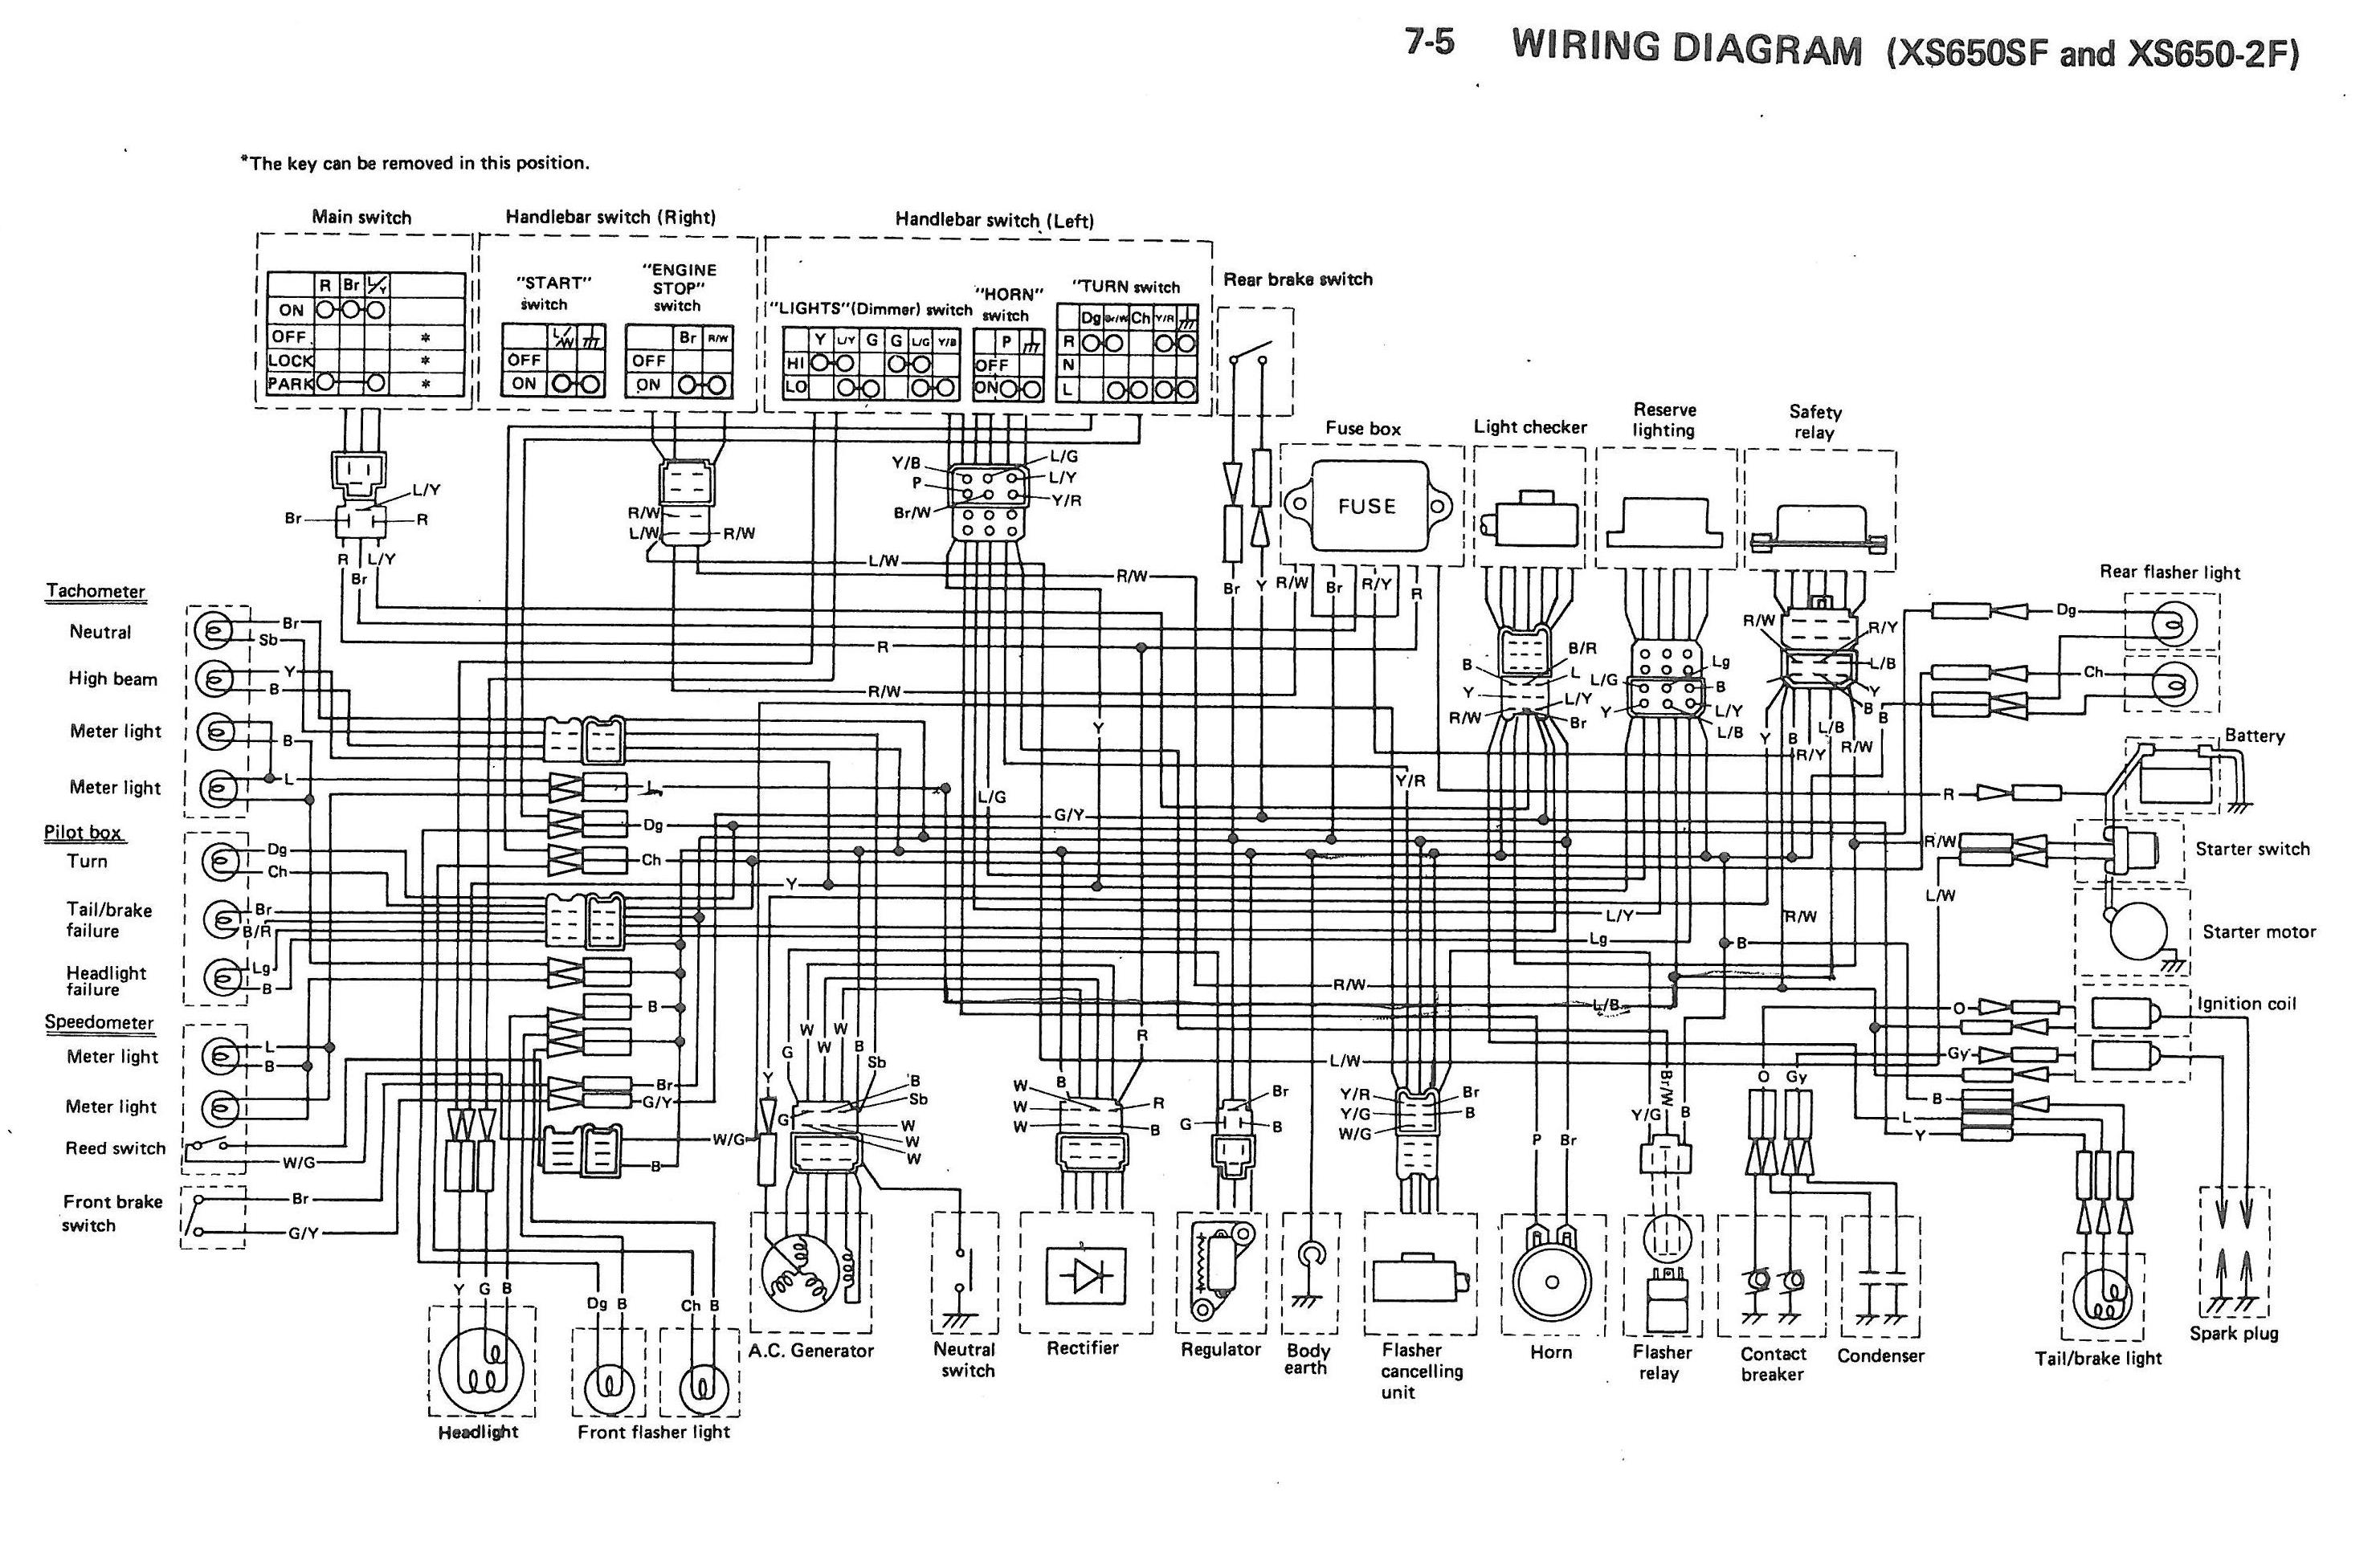 Wiring Diagram 1995 Yamaha Golf Cart Xs650 Schematic Data Xs Detailed 1978 Simple